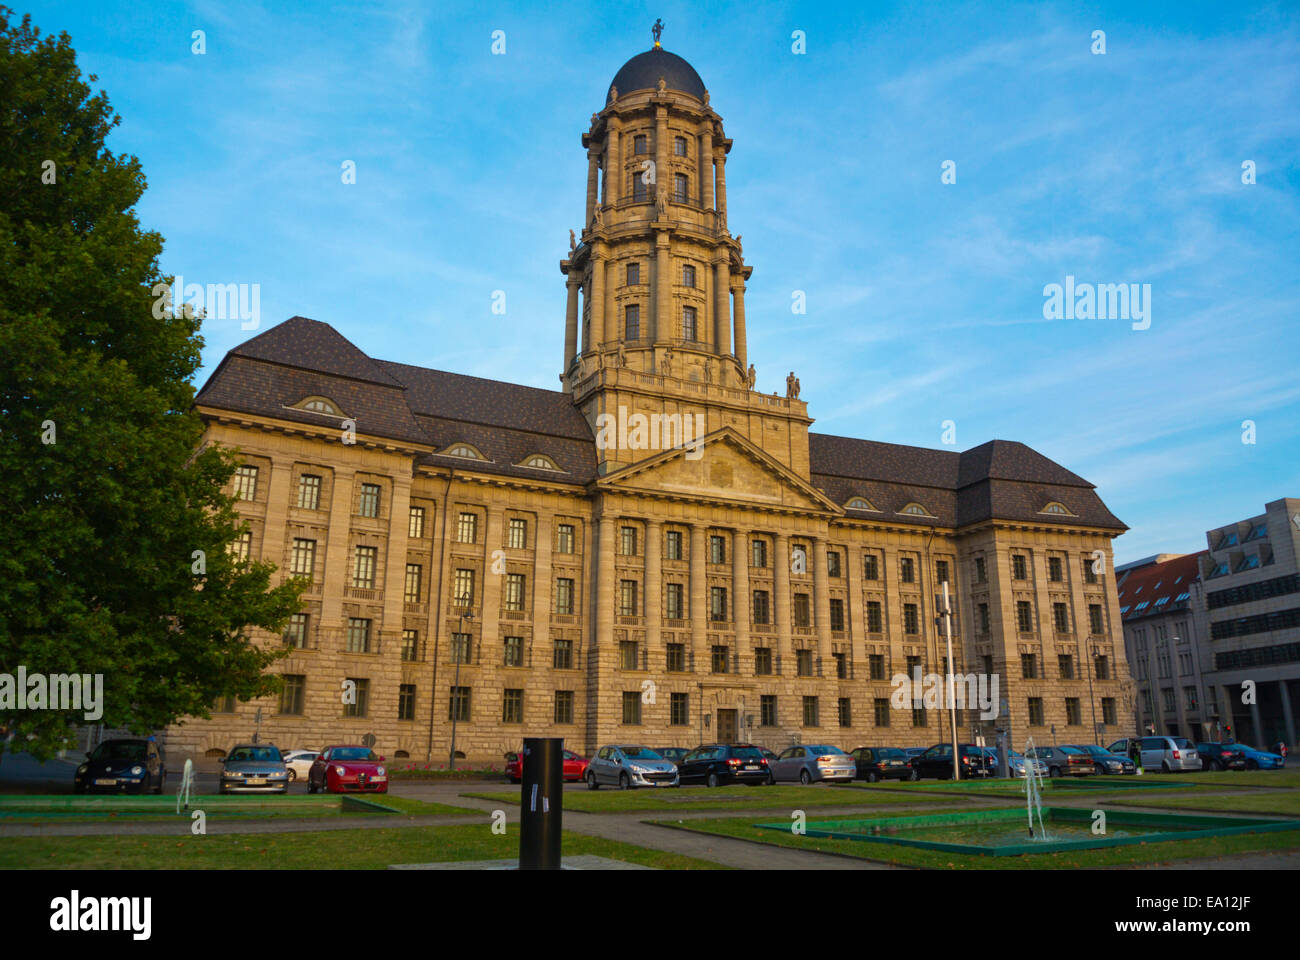 Altes Stadthaus building, Mitte district, east Berlin, Germany - Stock Image